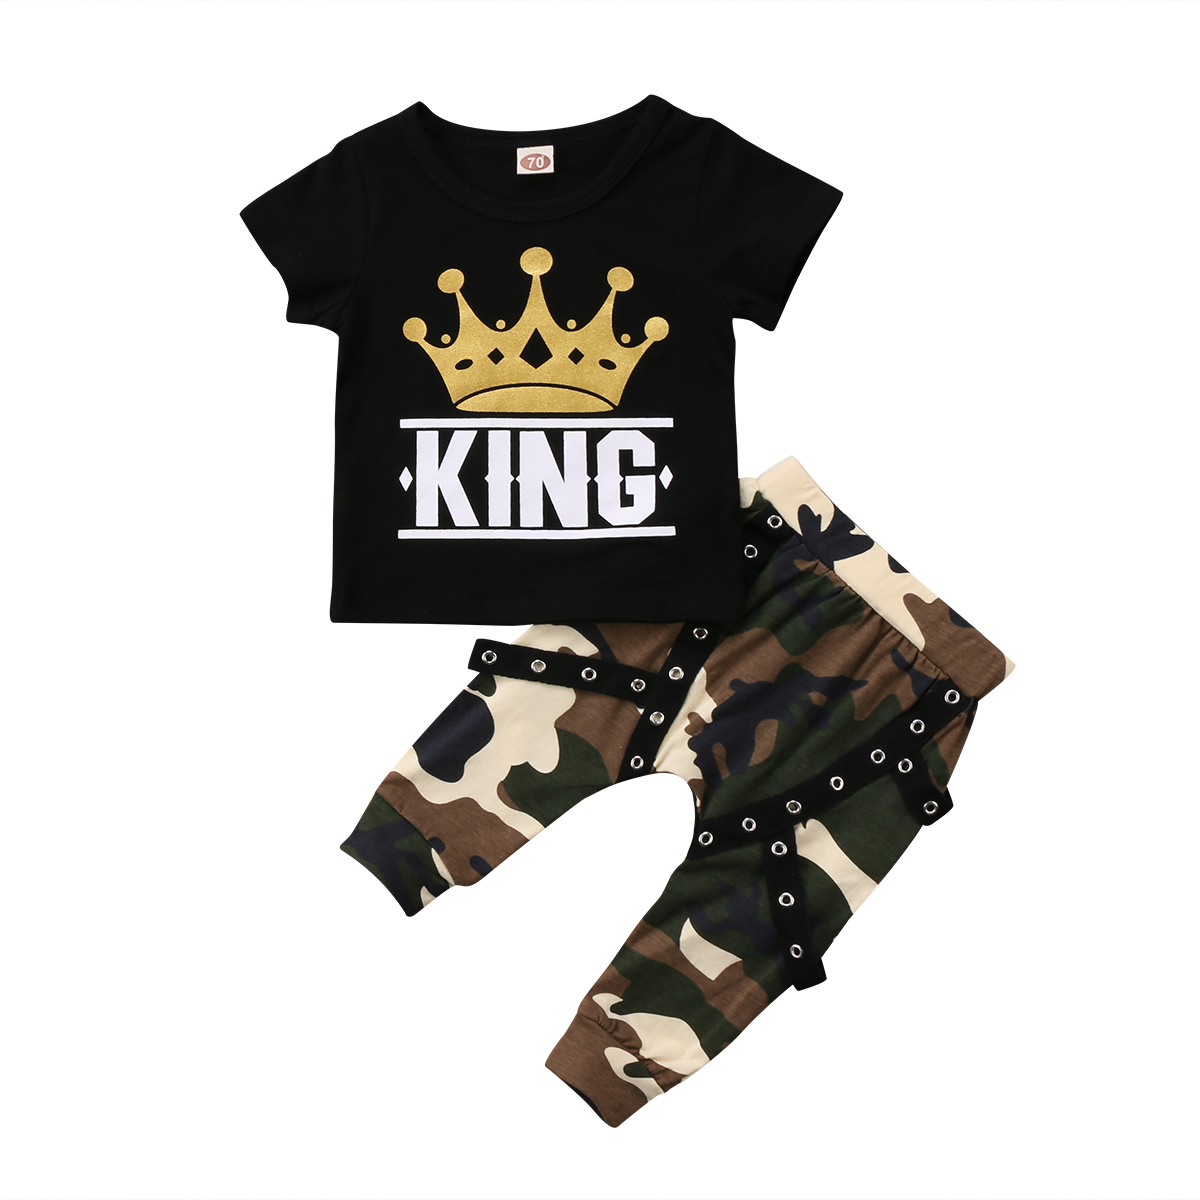 Toddler Kids Baby Boys Clothing Tops T-shirt Short Sleeve Crown Camo Pants Cotton Casual Outfits Clothes Boy 1-5T